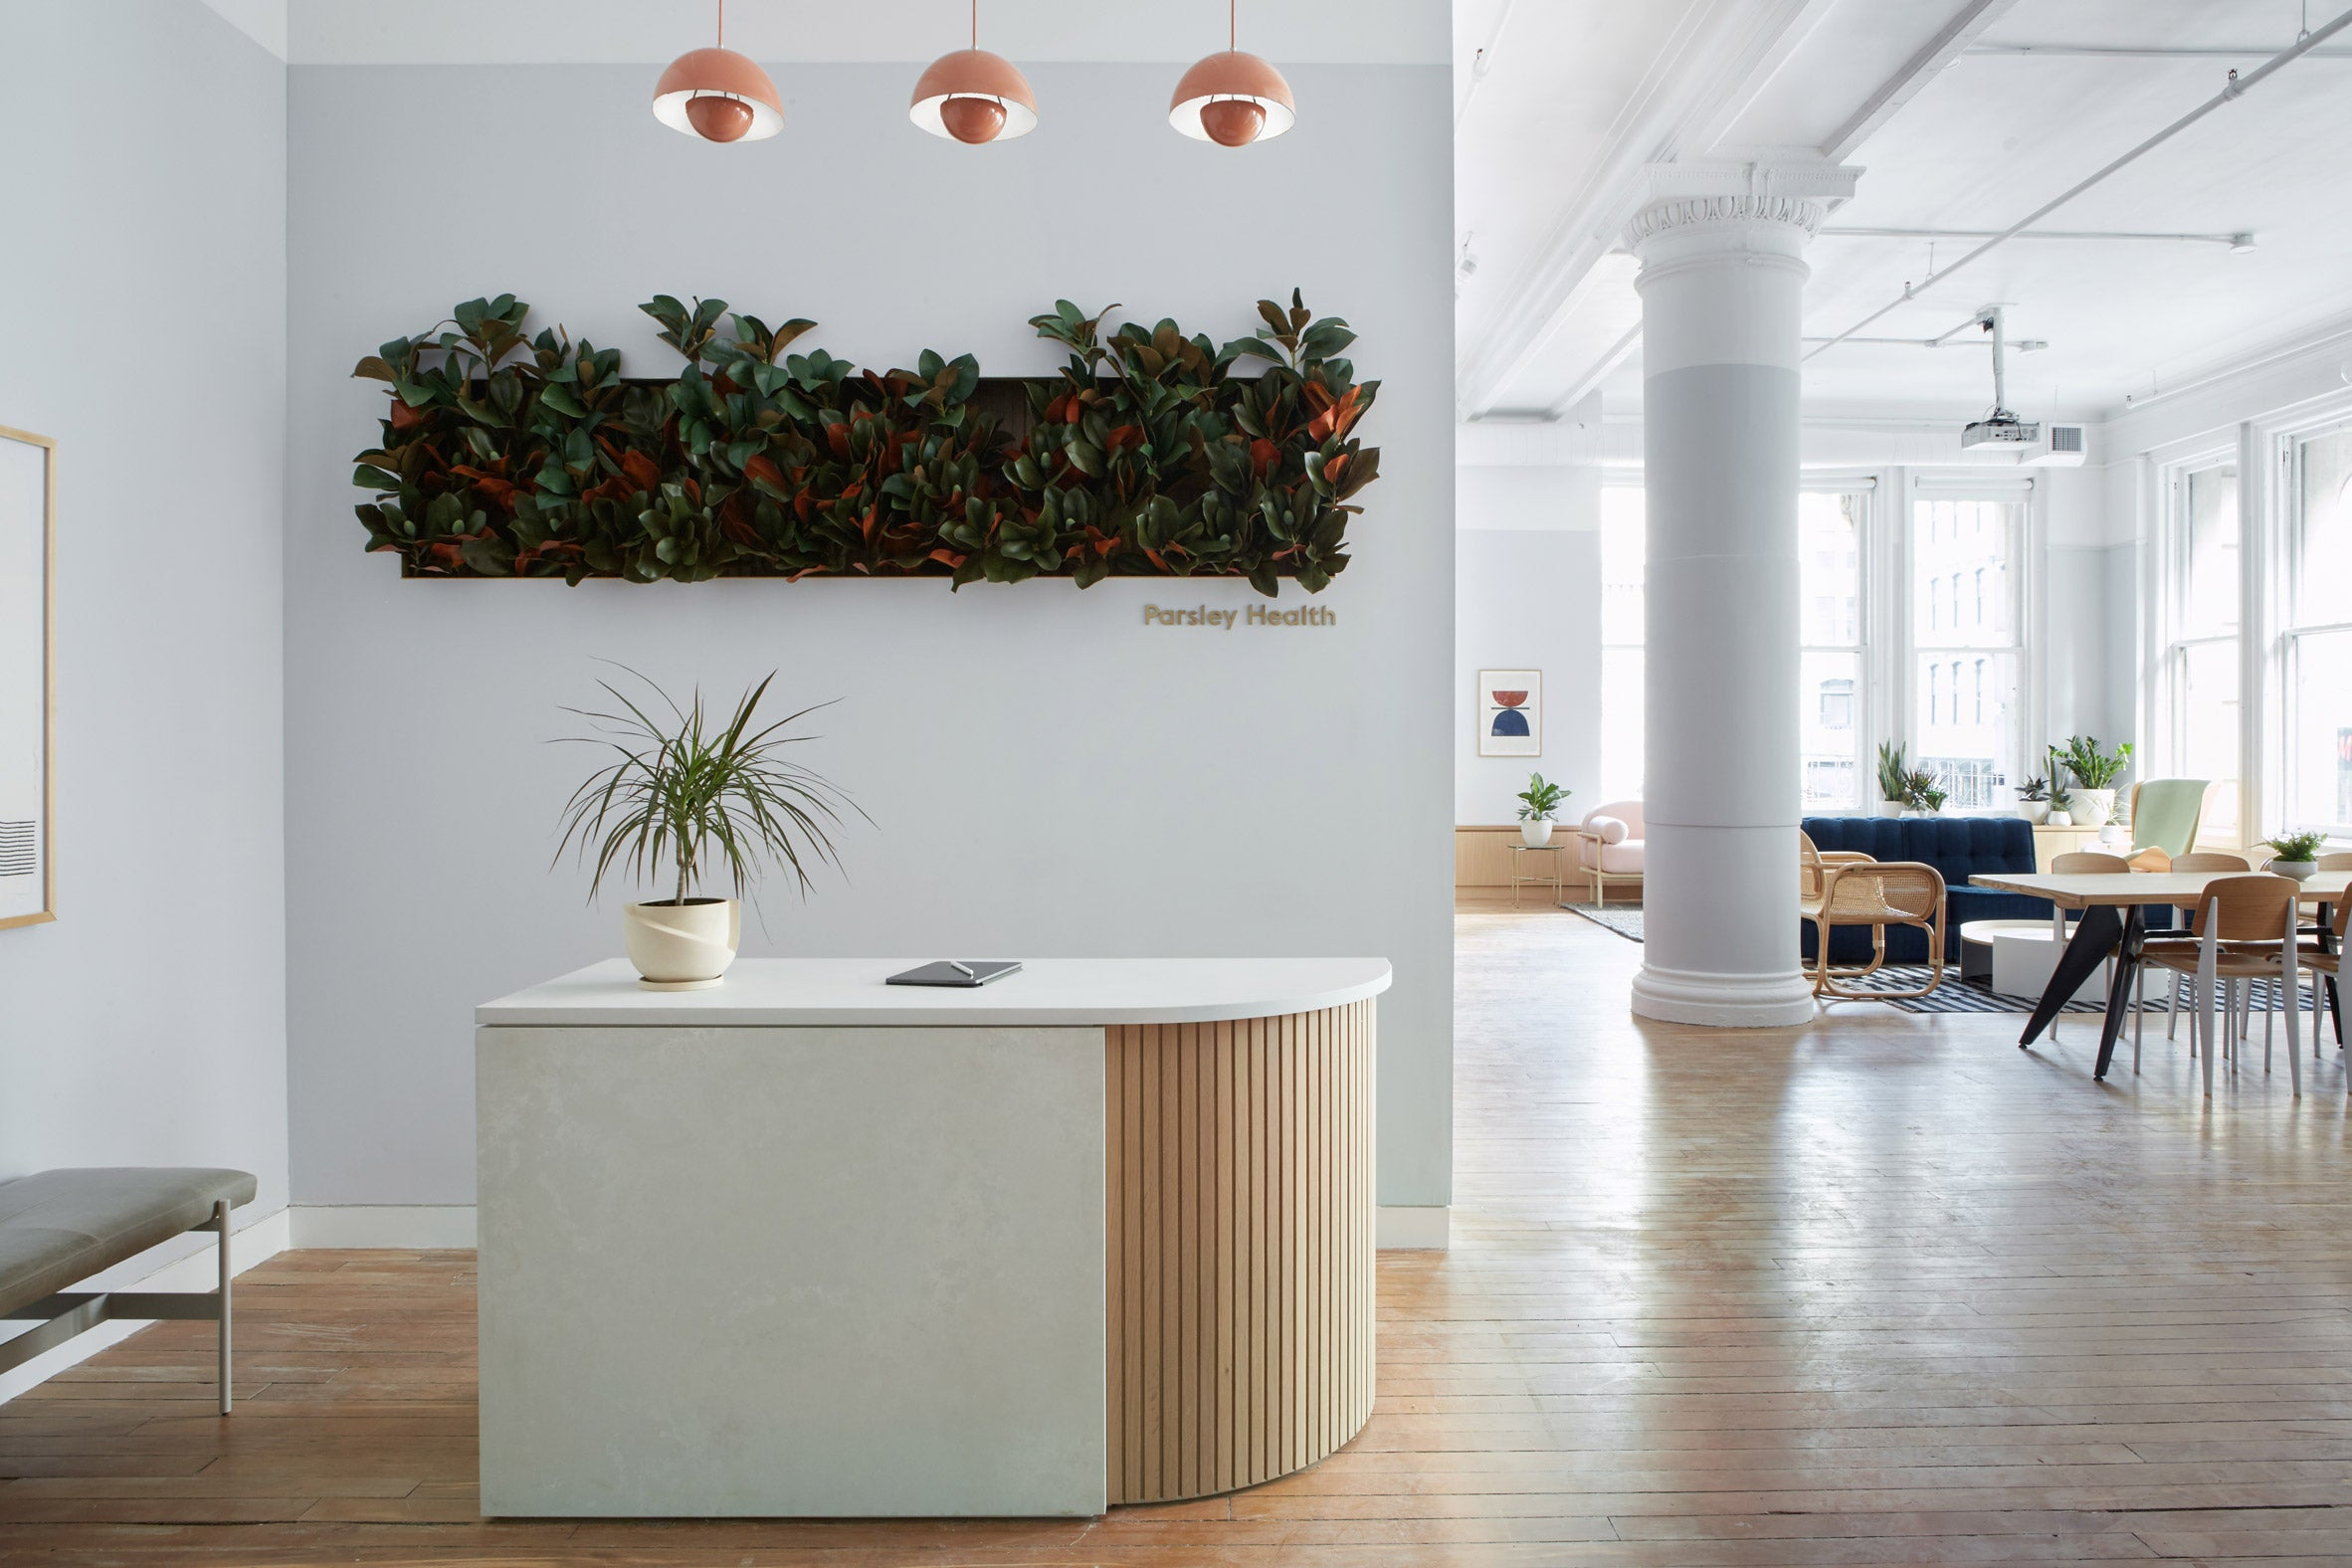 Earthy and homey details feature in New York clinic Parsley Health by Alda Ly, Design team: Alda Ly, Loretta Choi, Daisy Hook, Photography is by Reid Rolls